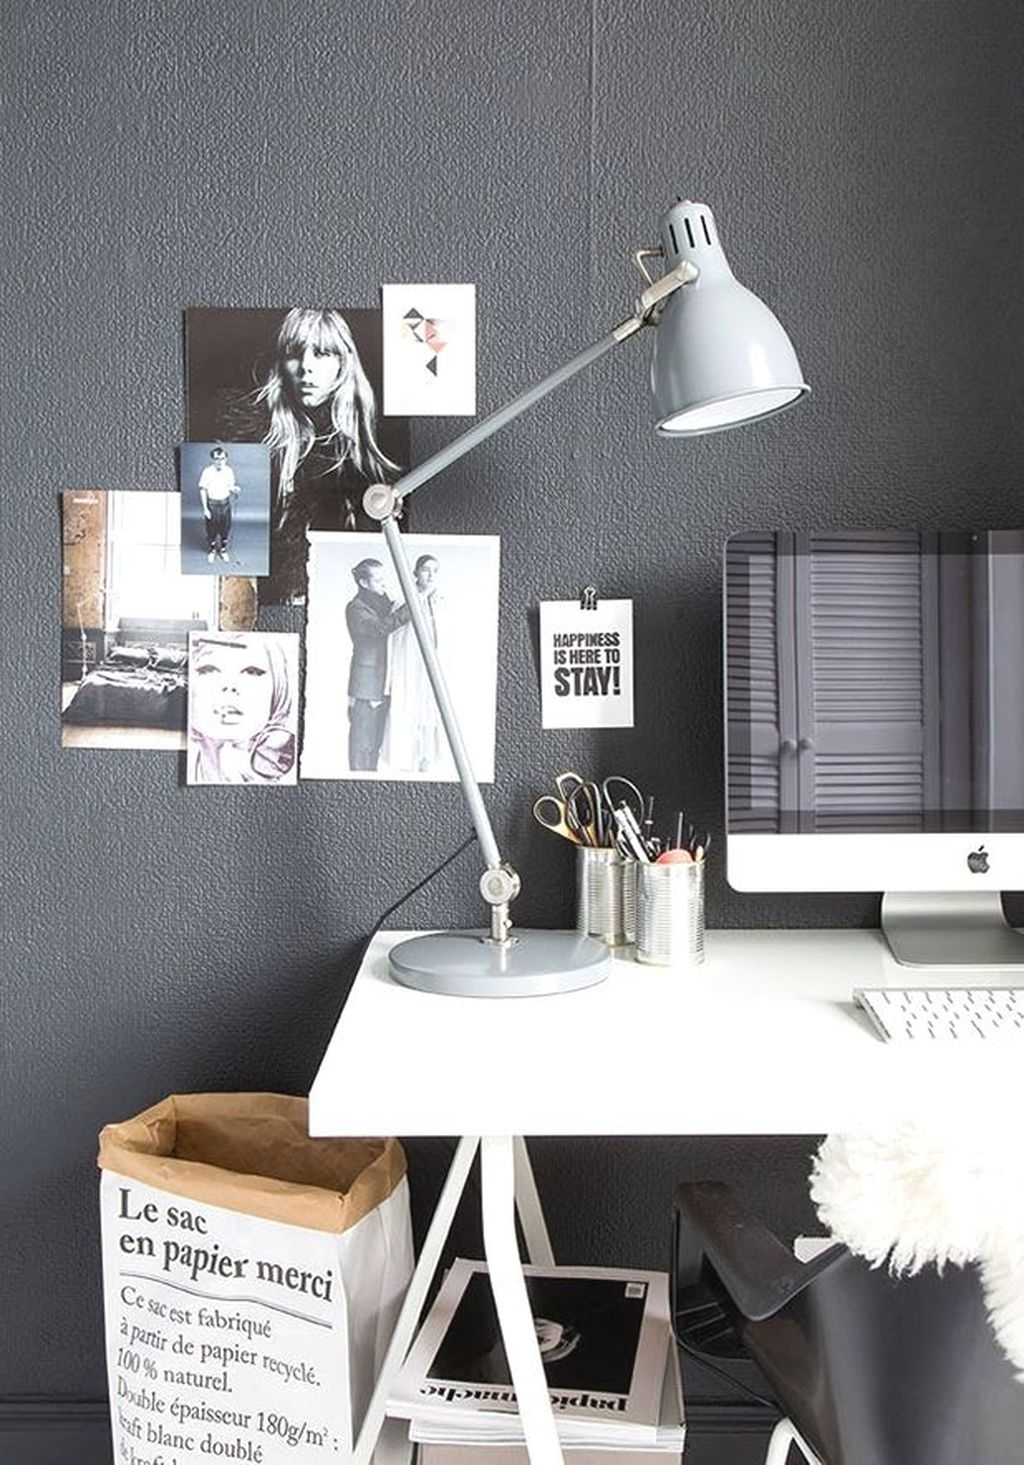 Splendid Monochrome Home Office Decor Ideas To Apply Asap40